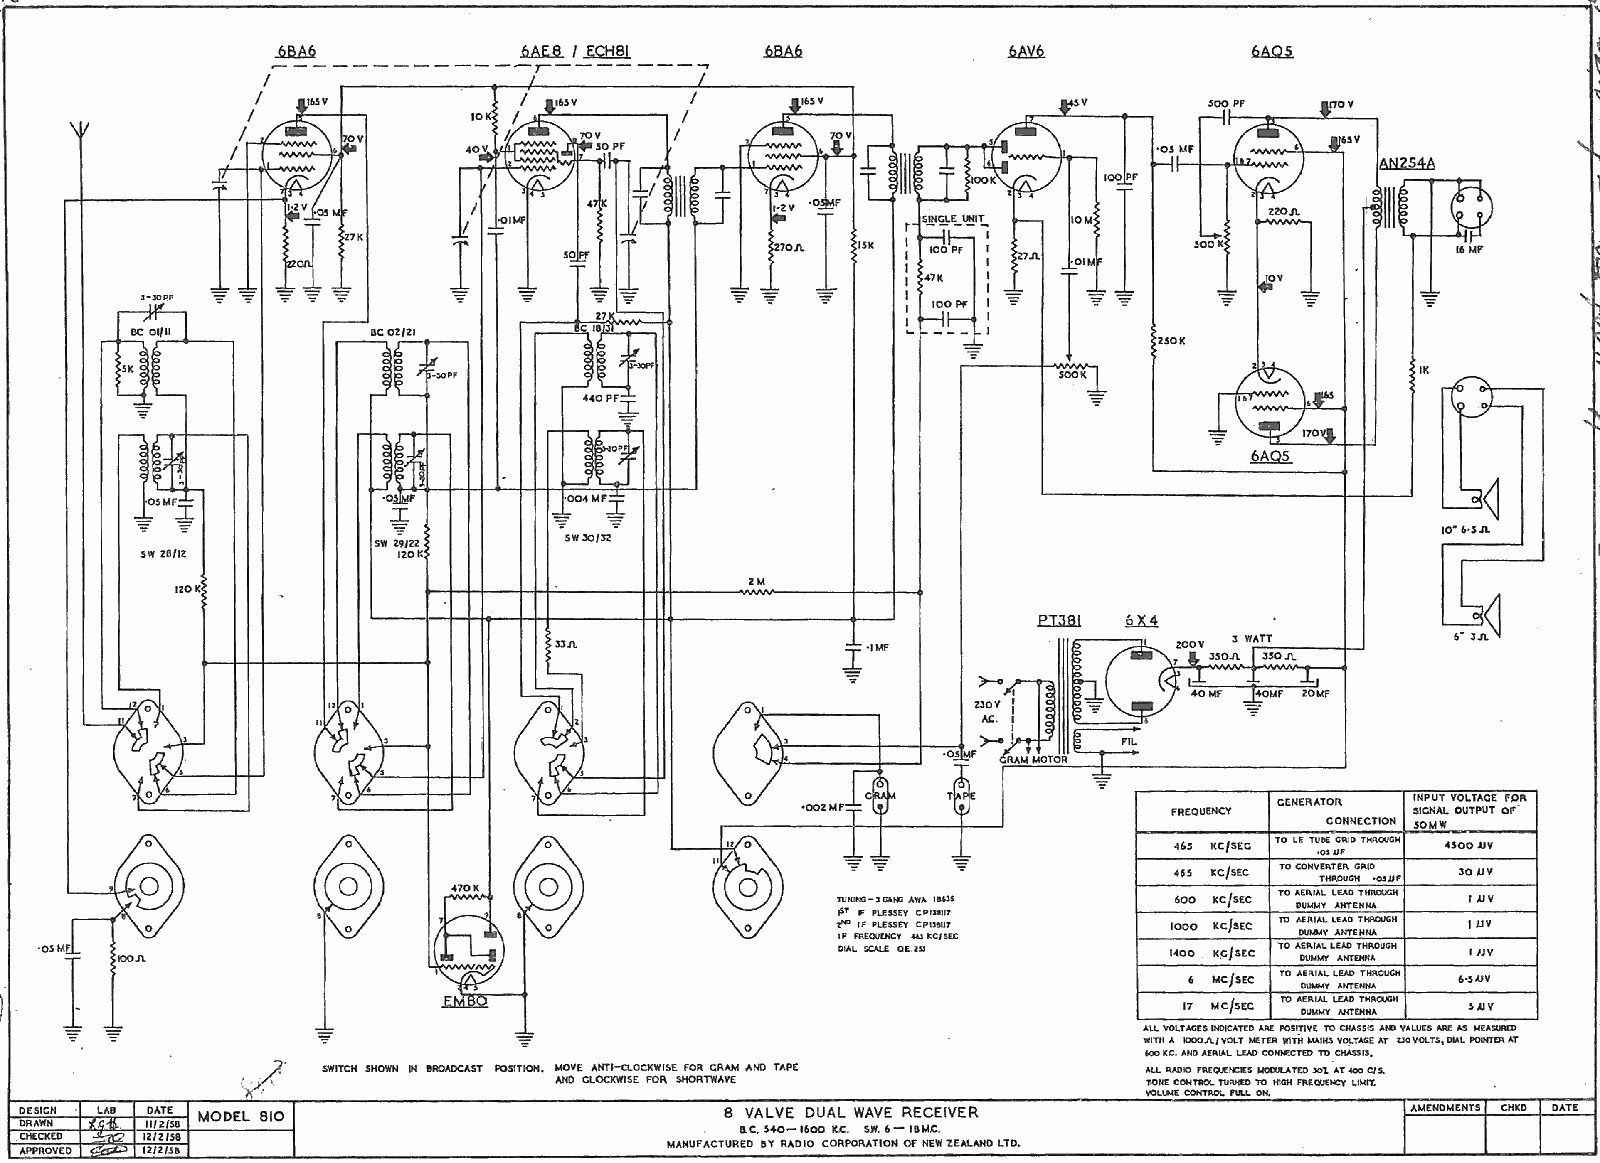 Columbus model 810 Schematic